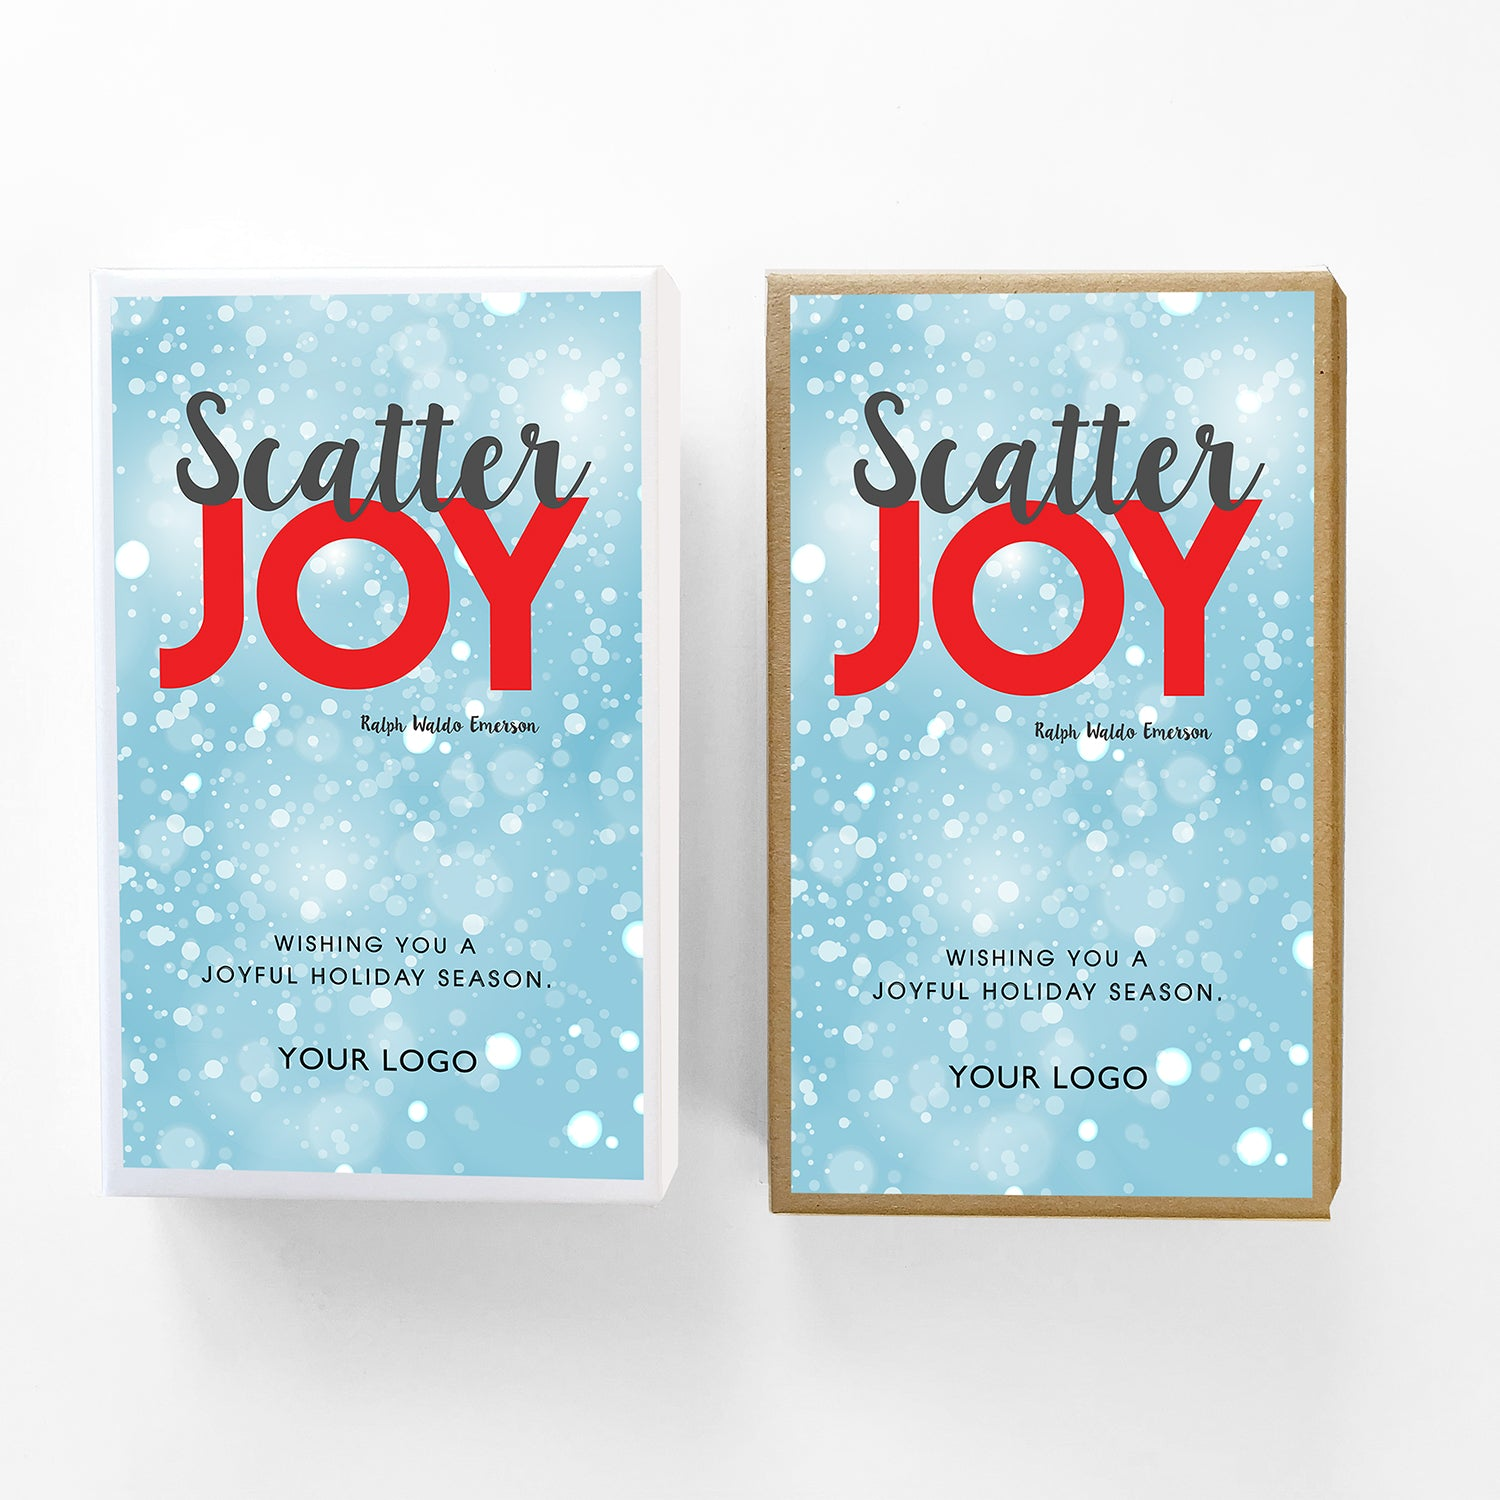 Scatter Joy Custom Caramel Holiday Gift Box